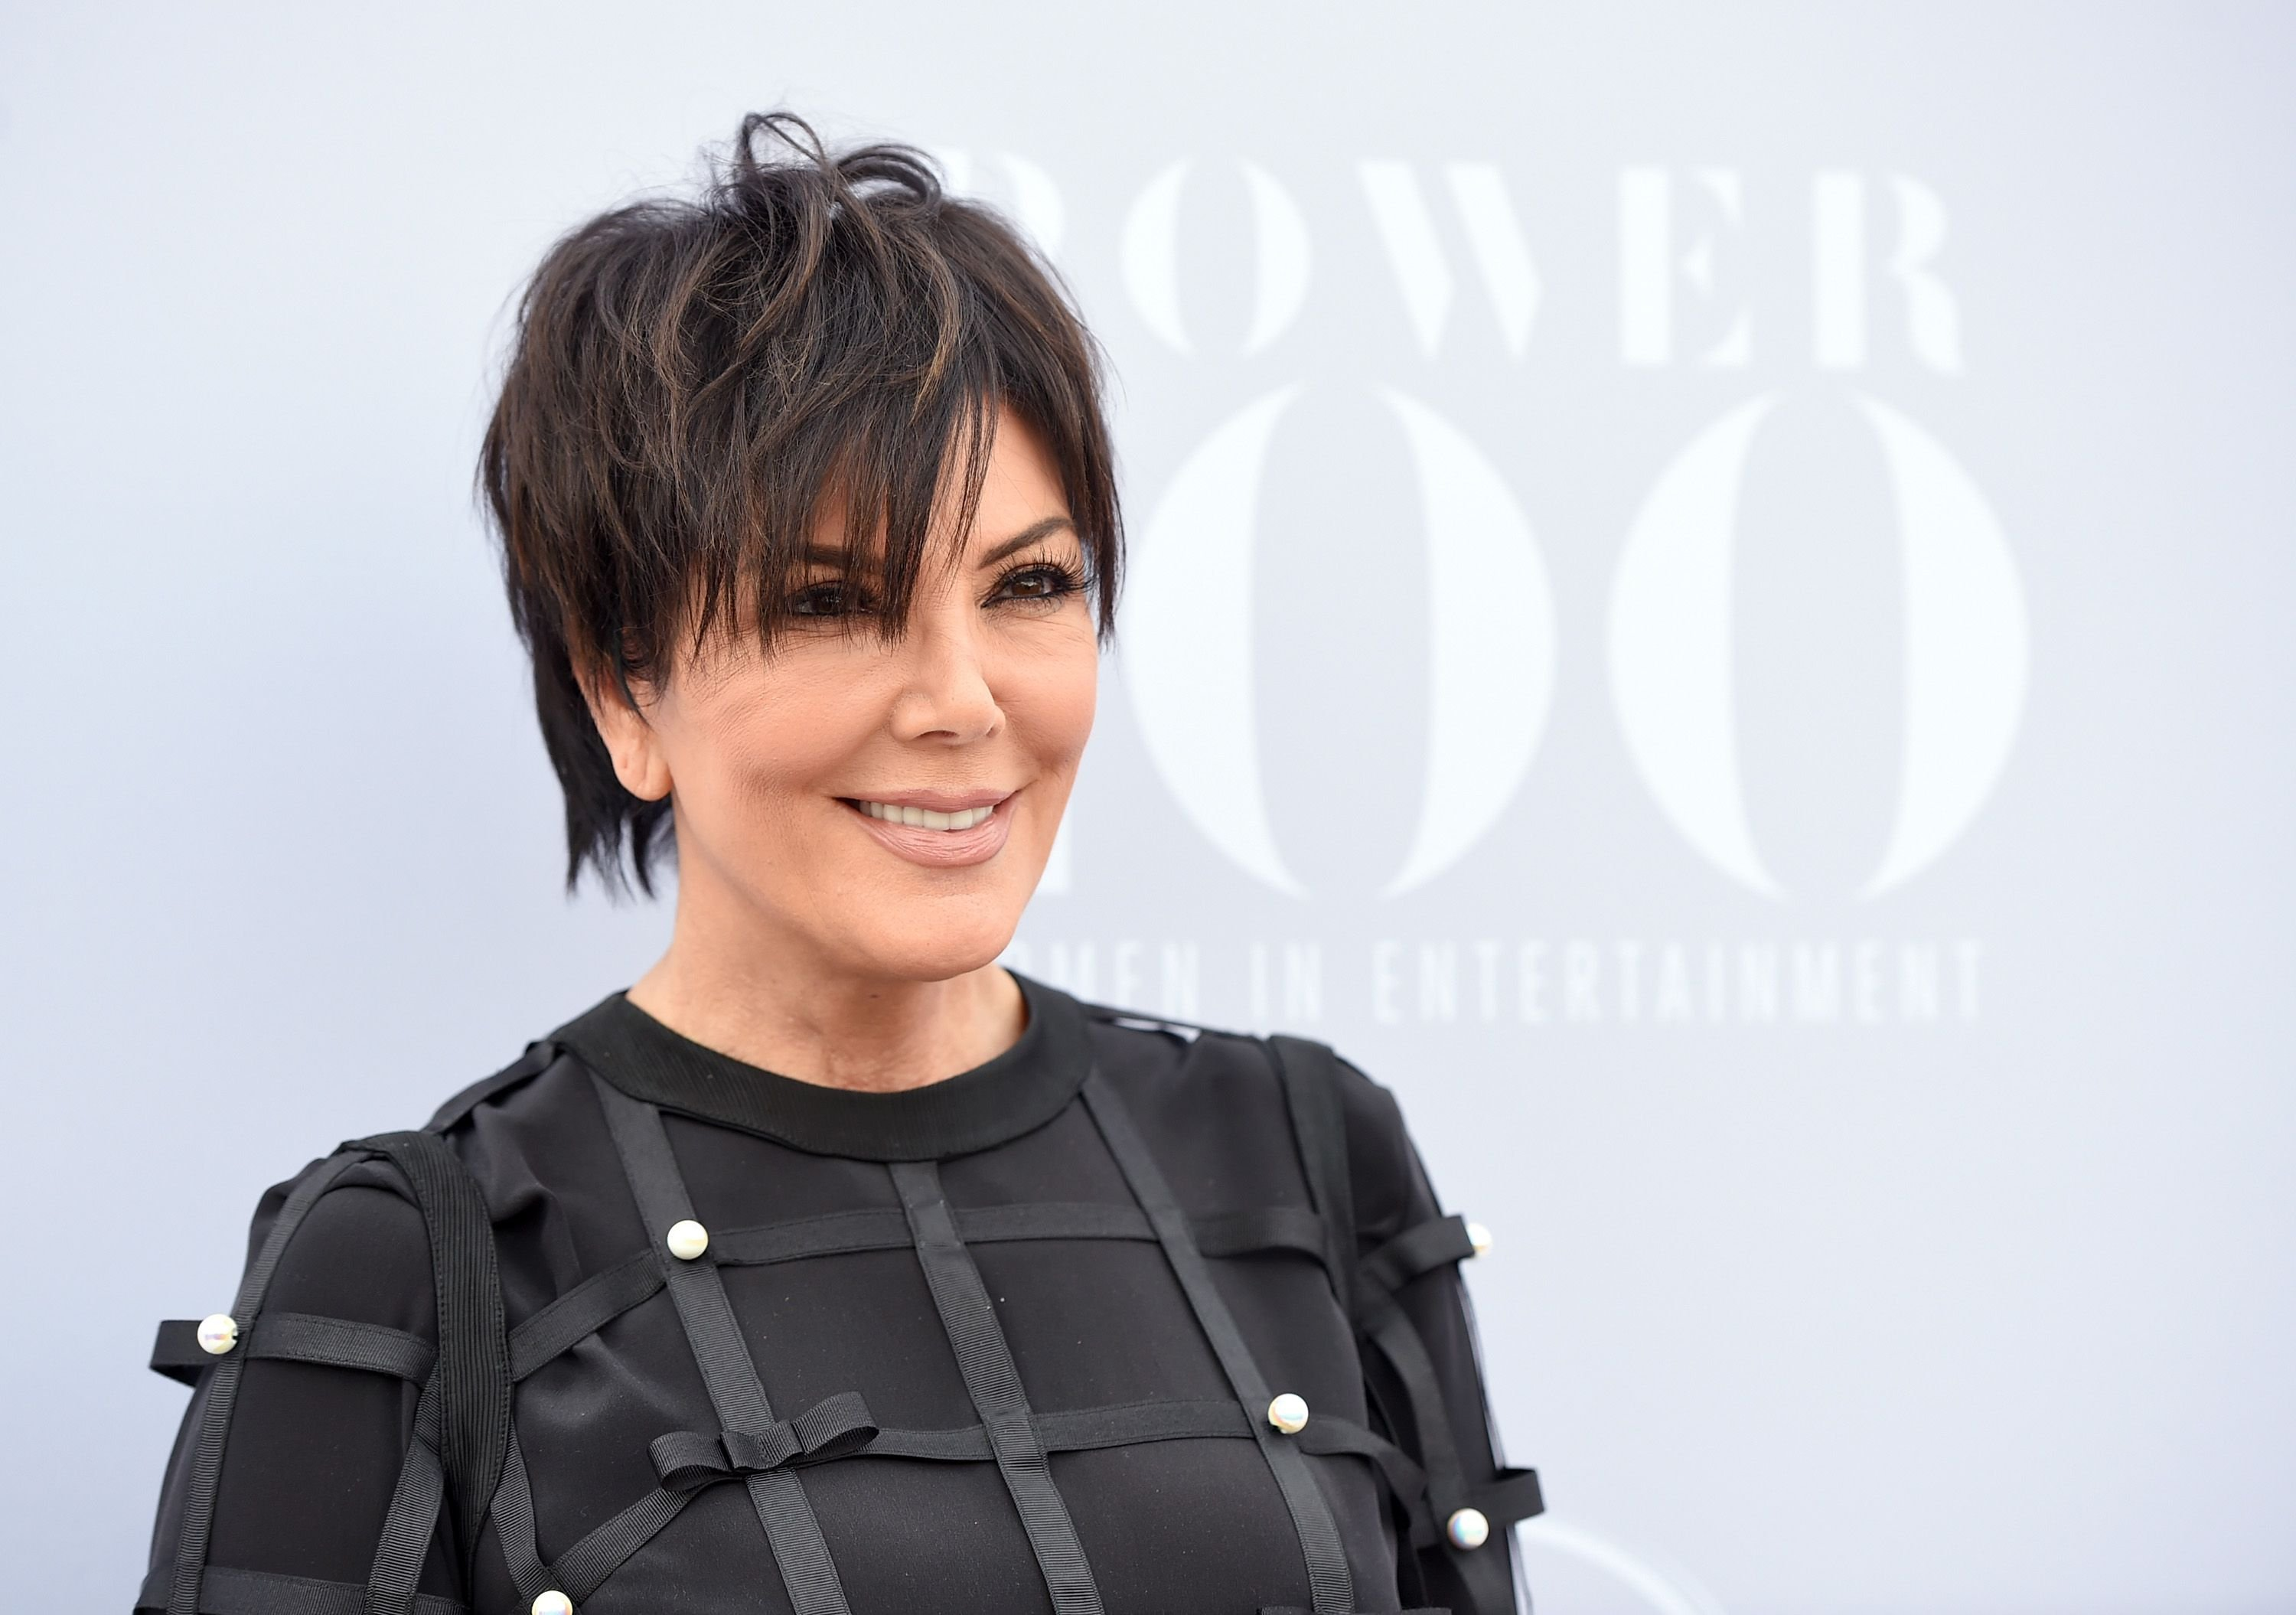 Kris Jenner at the 24th annual Women in Entertainment Breakfast hosted by The Hollywood Reporter at Milk Studios on December 9, 2015   Photo: Getty Images